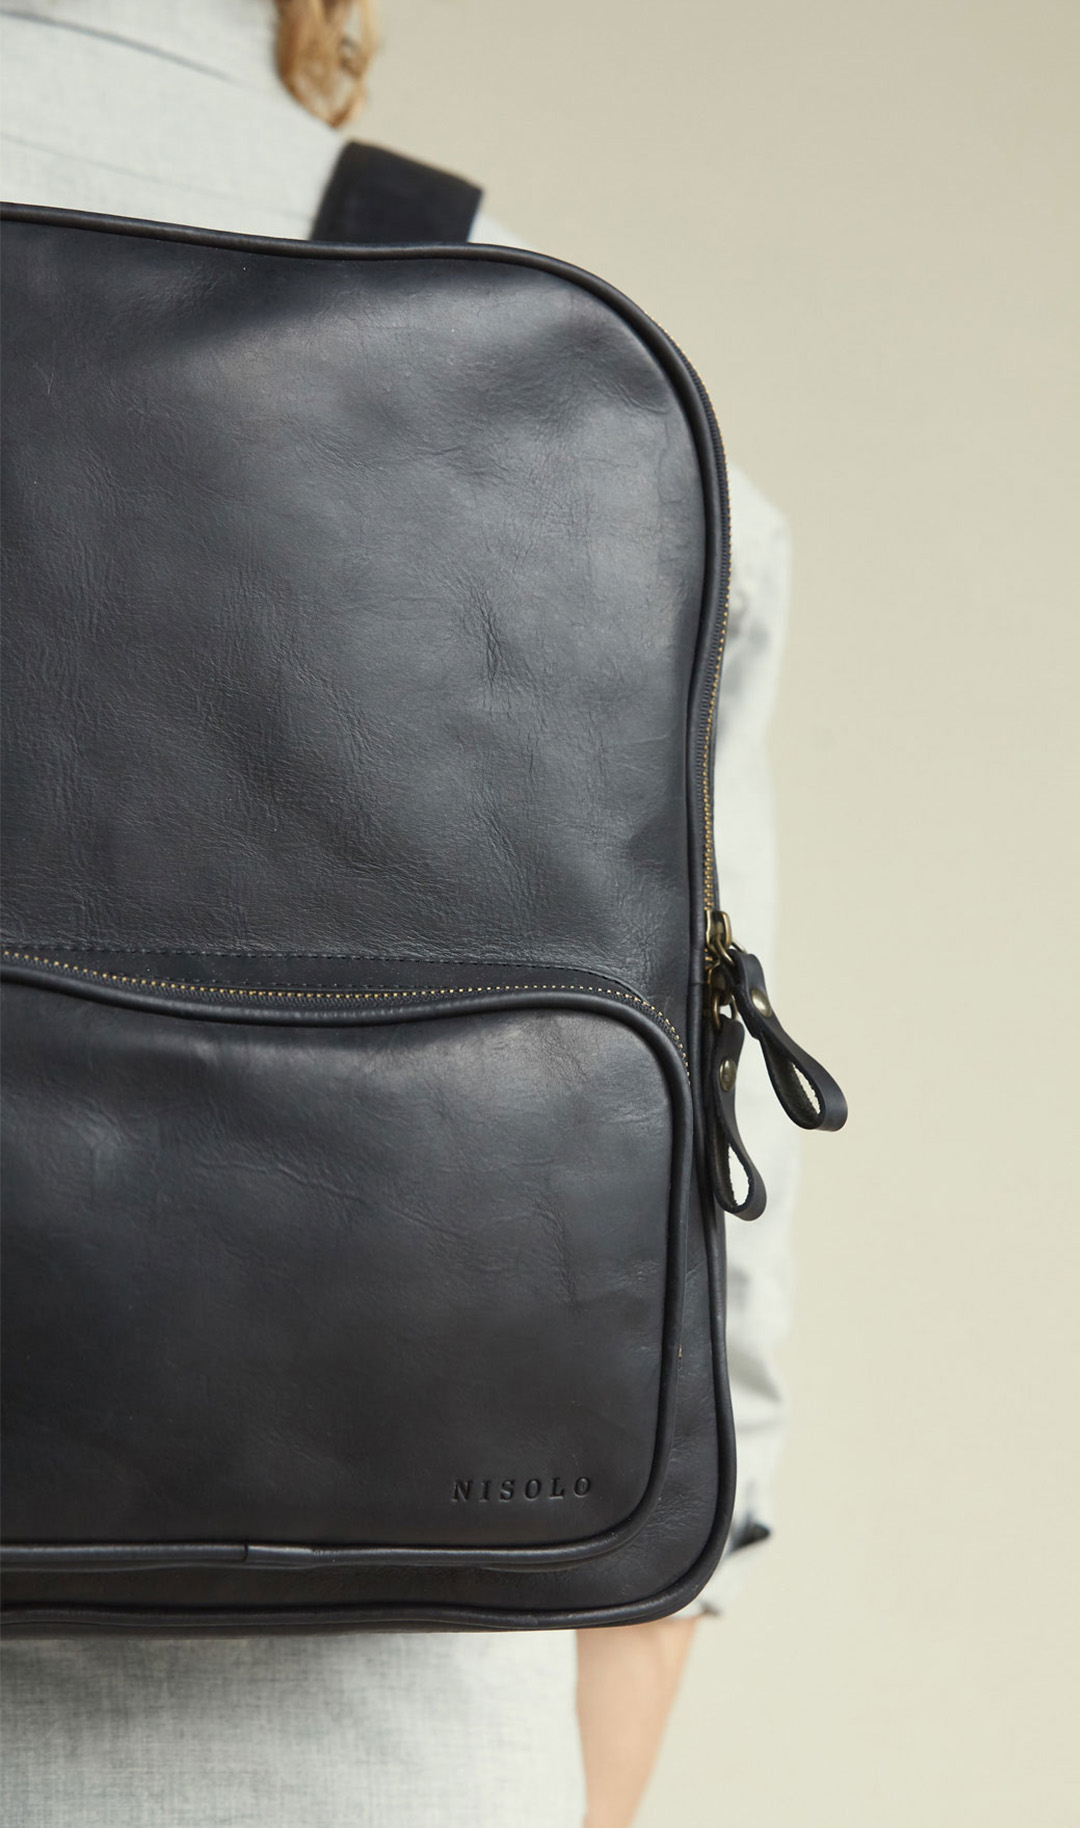 Nisolo Black Leather Backpack